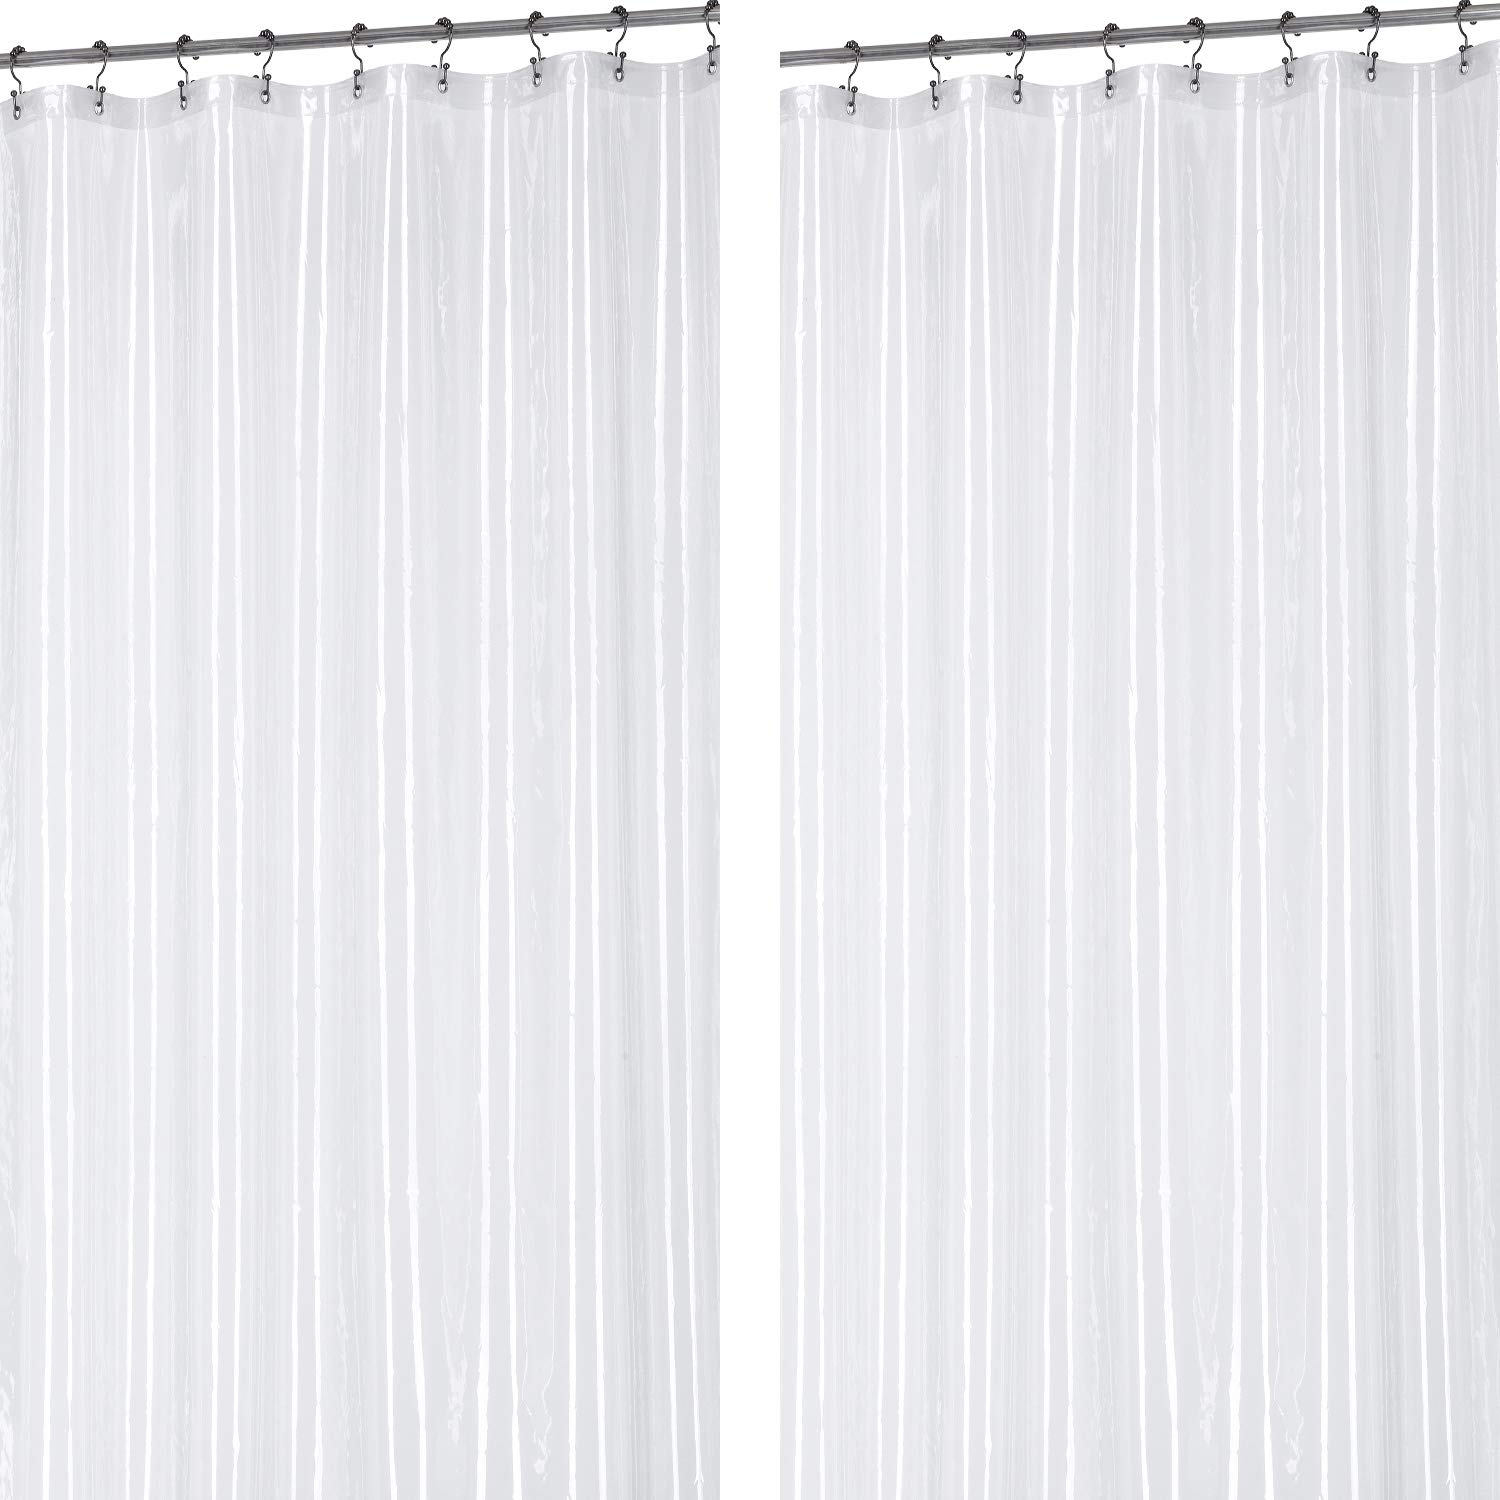 Utopia Bedding 72 x 72 Inch Mildew Resistant 10 Gauge EVA Shower Curtain Liner, Eco Friendly - Anti-Bacterial, Non - Toxic Odorless with Anti Corrosion Grommets, 2 Pack